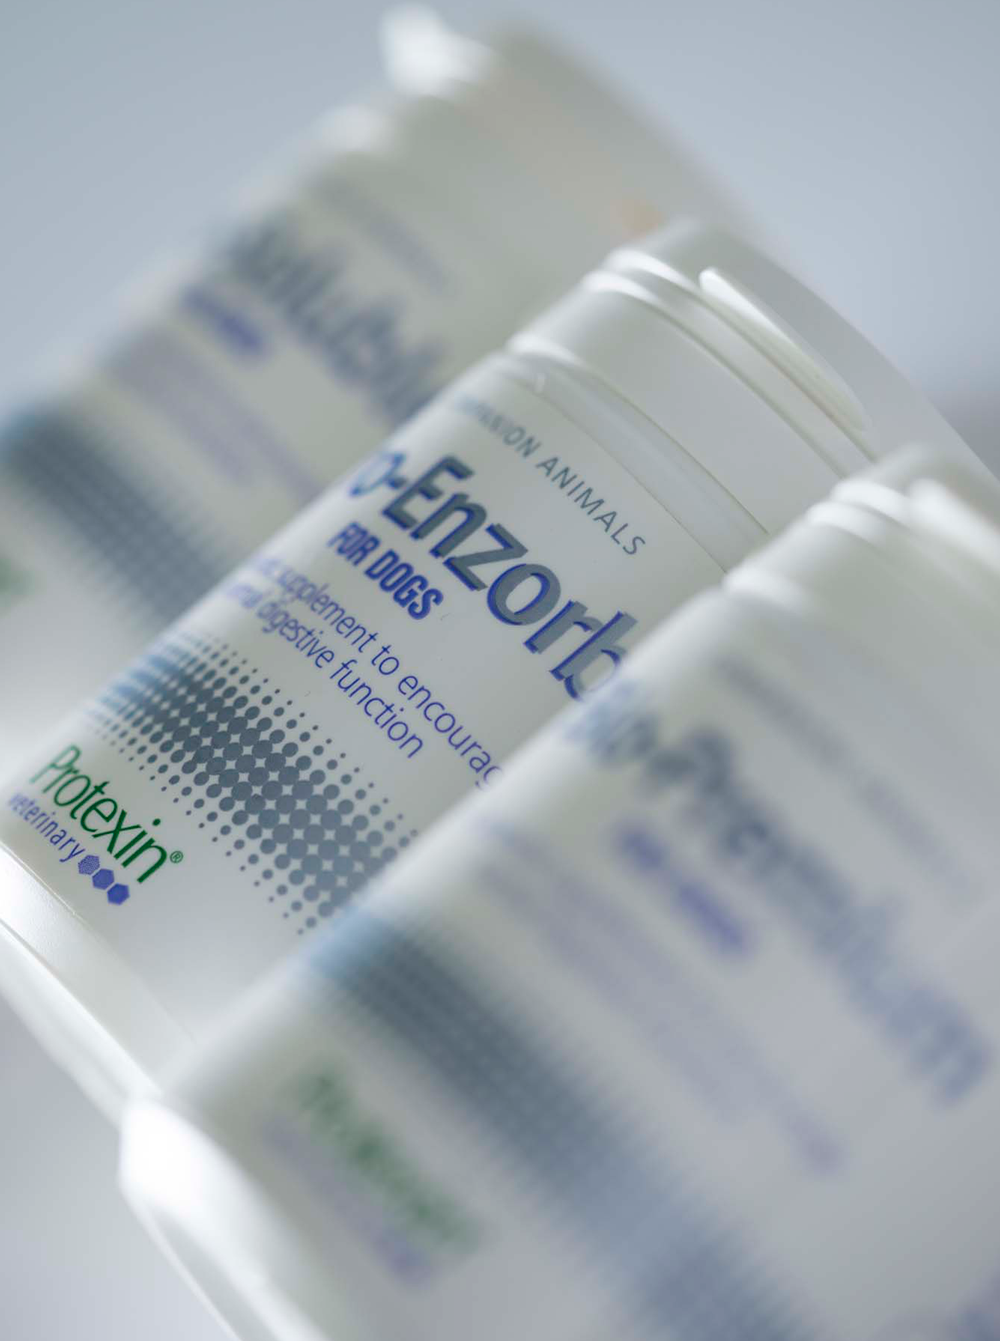 Protexin Pro-Enzorb packaging design